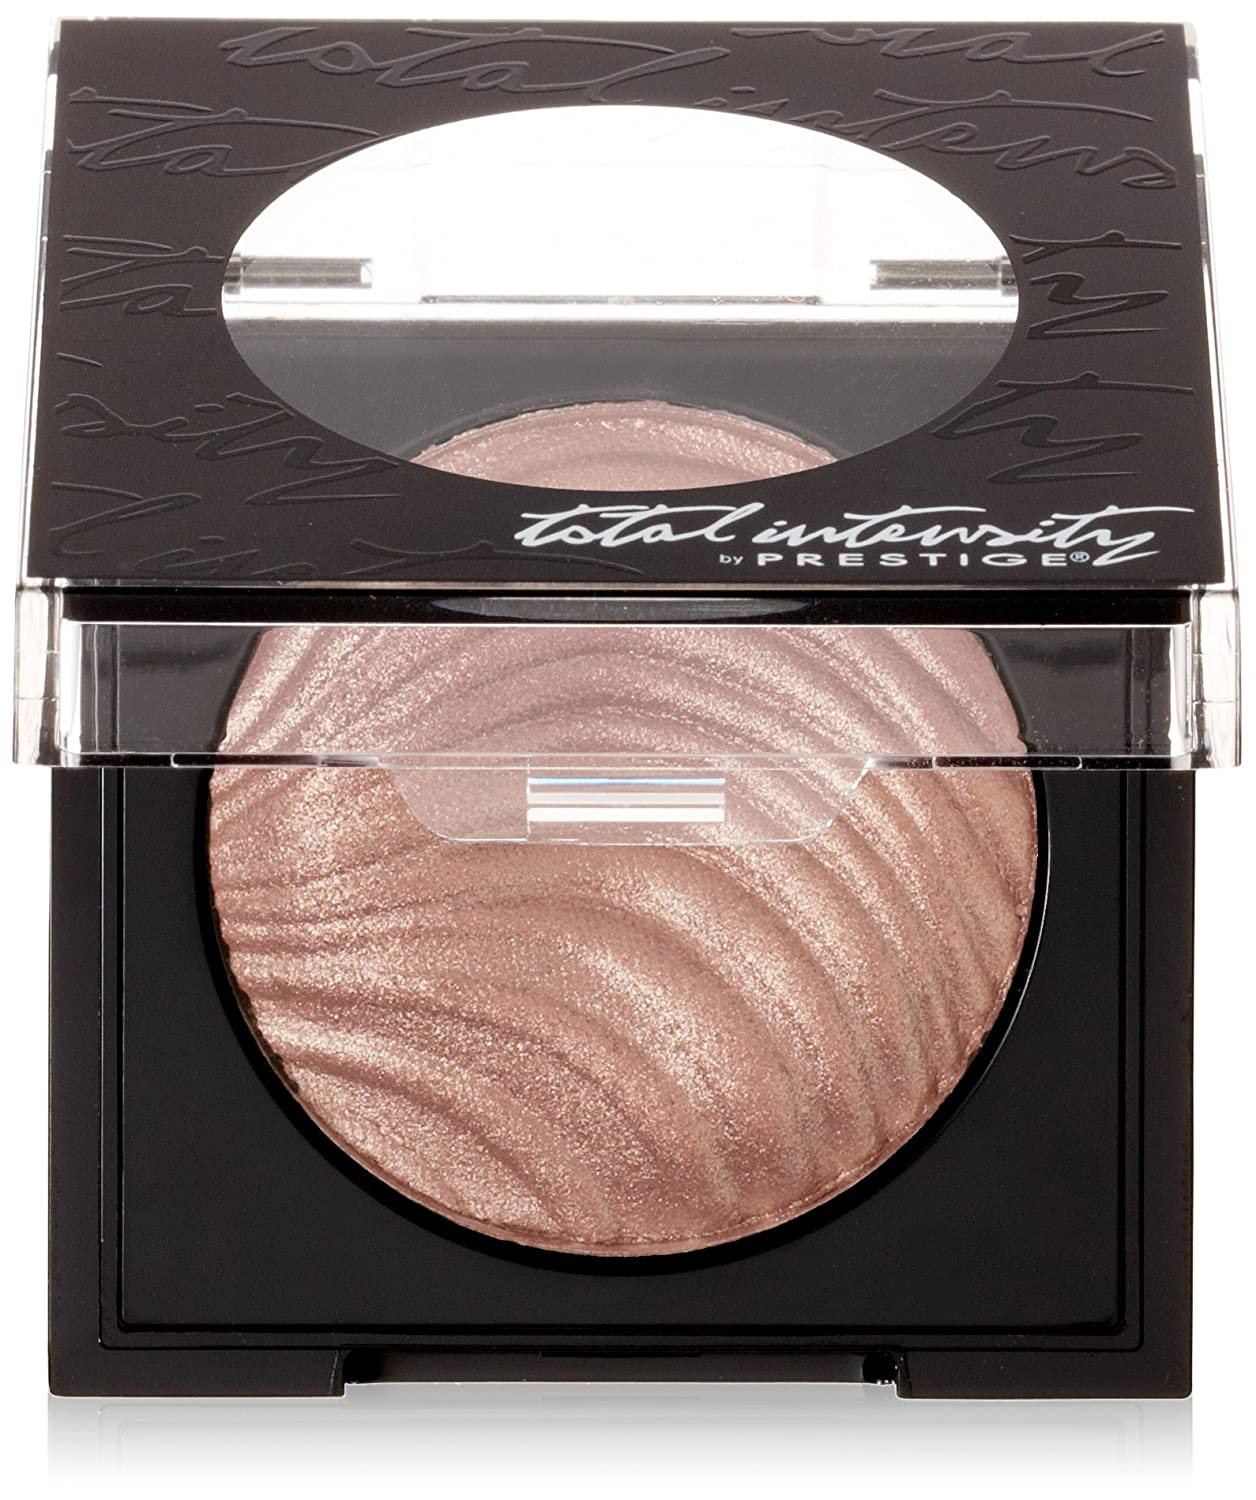 Prestige Cosmetics Total Intensity Color Rush Shadow Pretty in Pink, 1 Count TIC-01